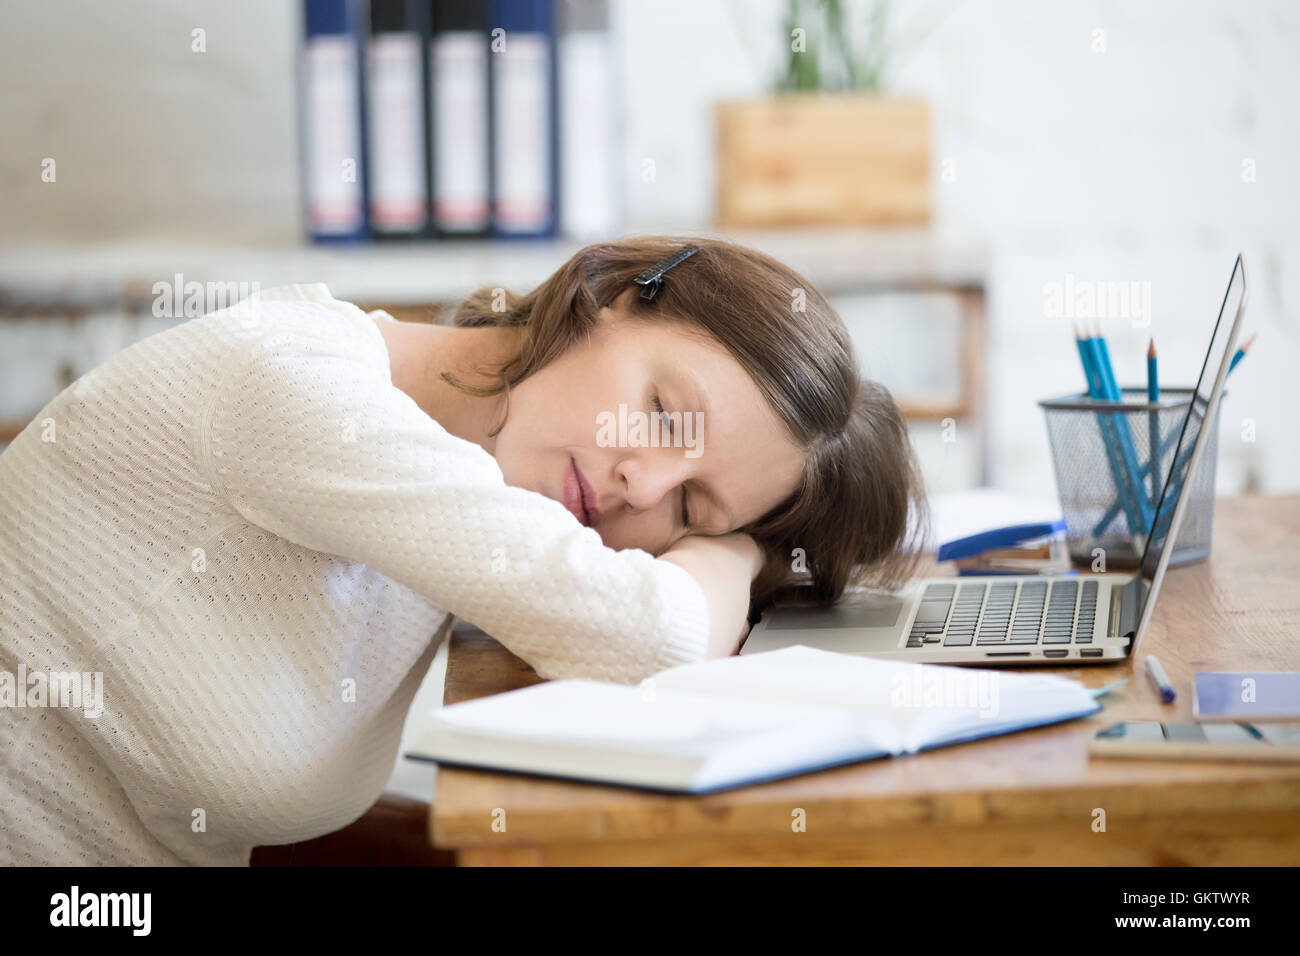 Portrait of young woman lying on the table in front of laptop, sleepy, tired, overworked or lazy to work. Attractive - Stock Image